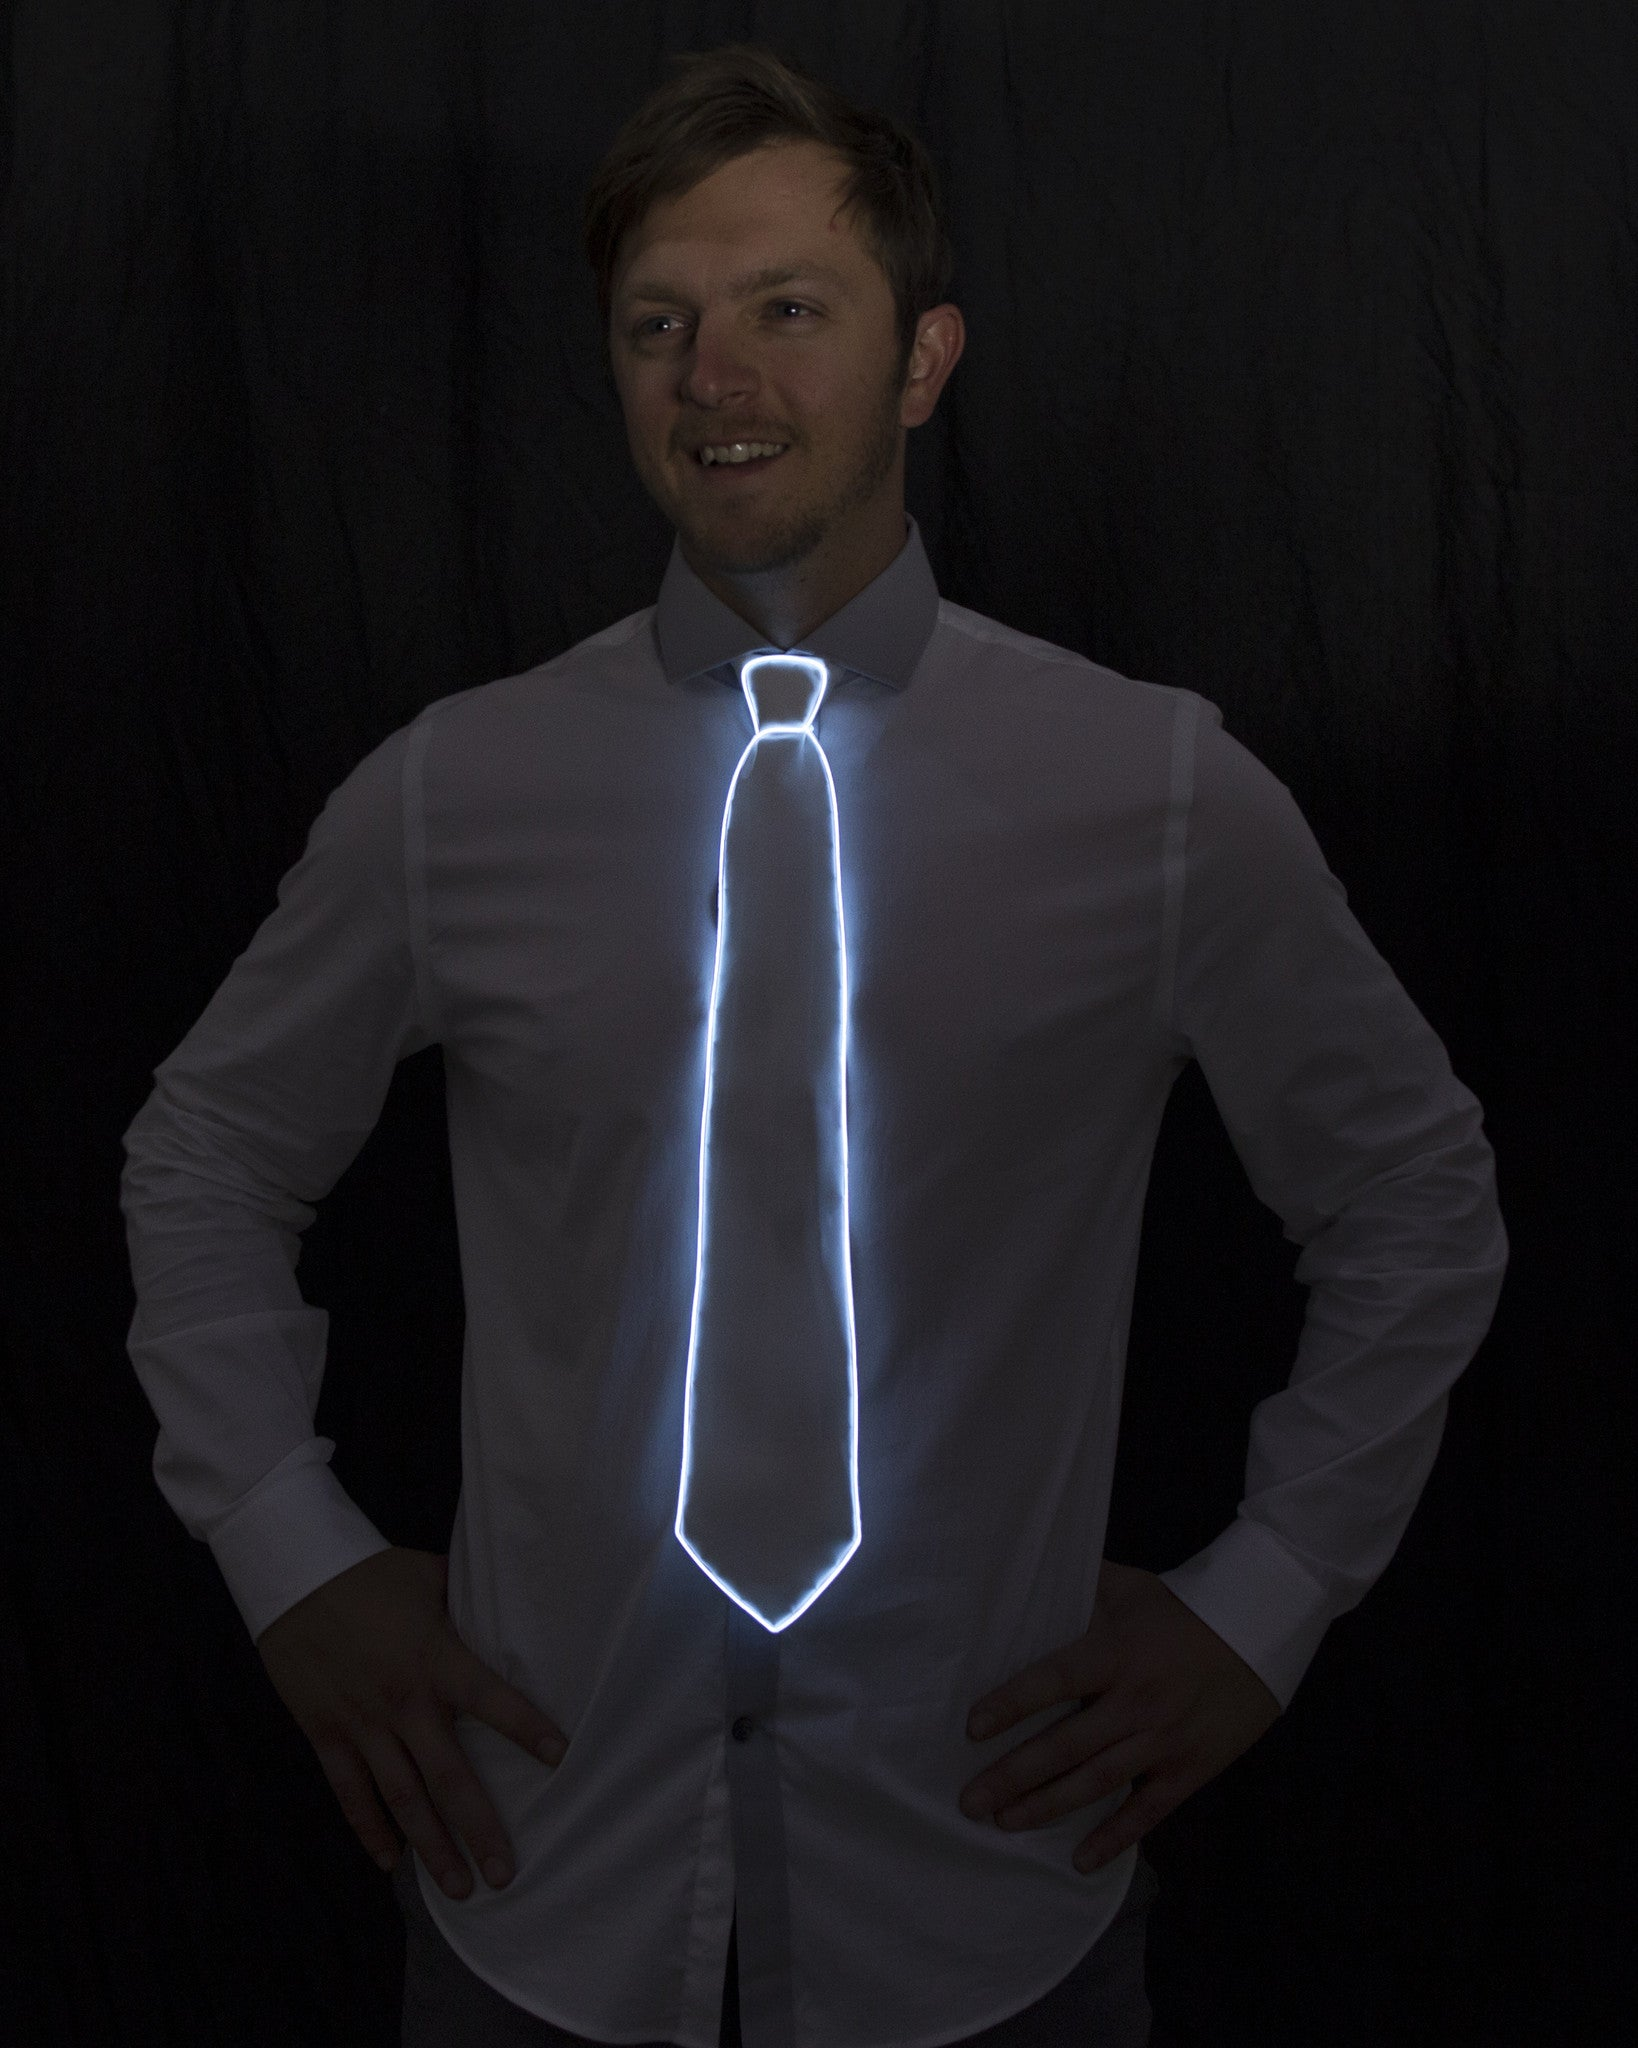 White Light Up Tie - Electric Styles | World's Number 1 Light Up Shoe Store - {product_type}} -  - 4